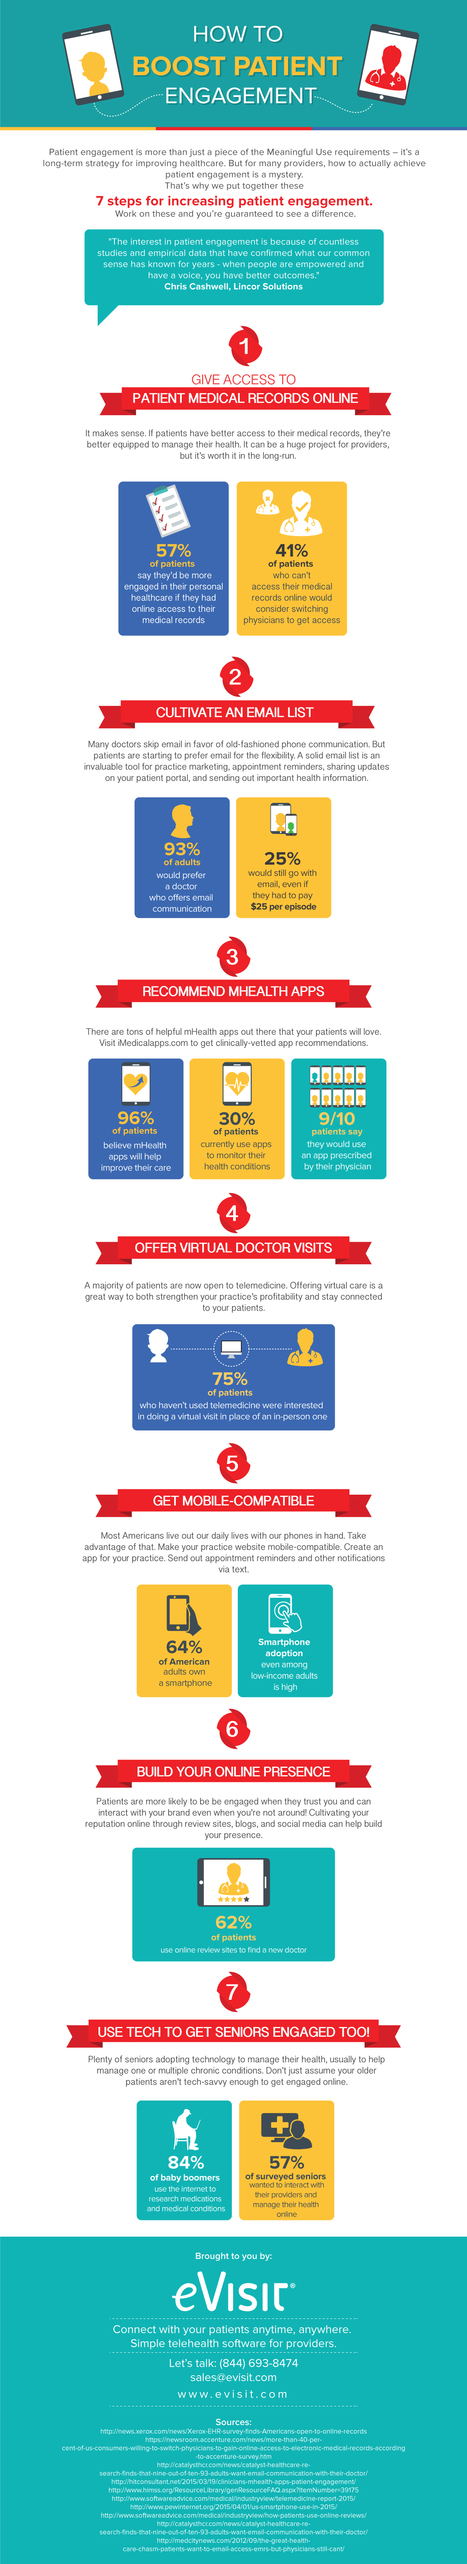 Infographic: 7 ways to improve patient engagement | Salud Publica | Scoop.it